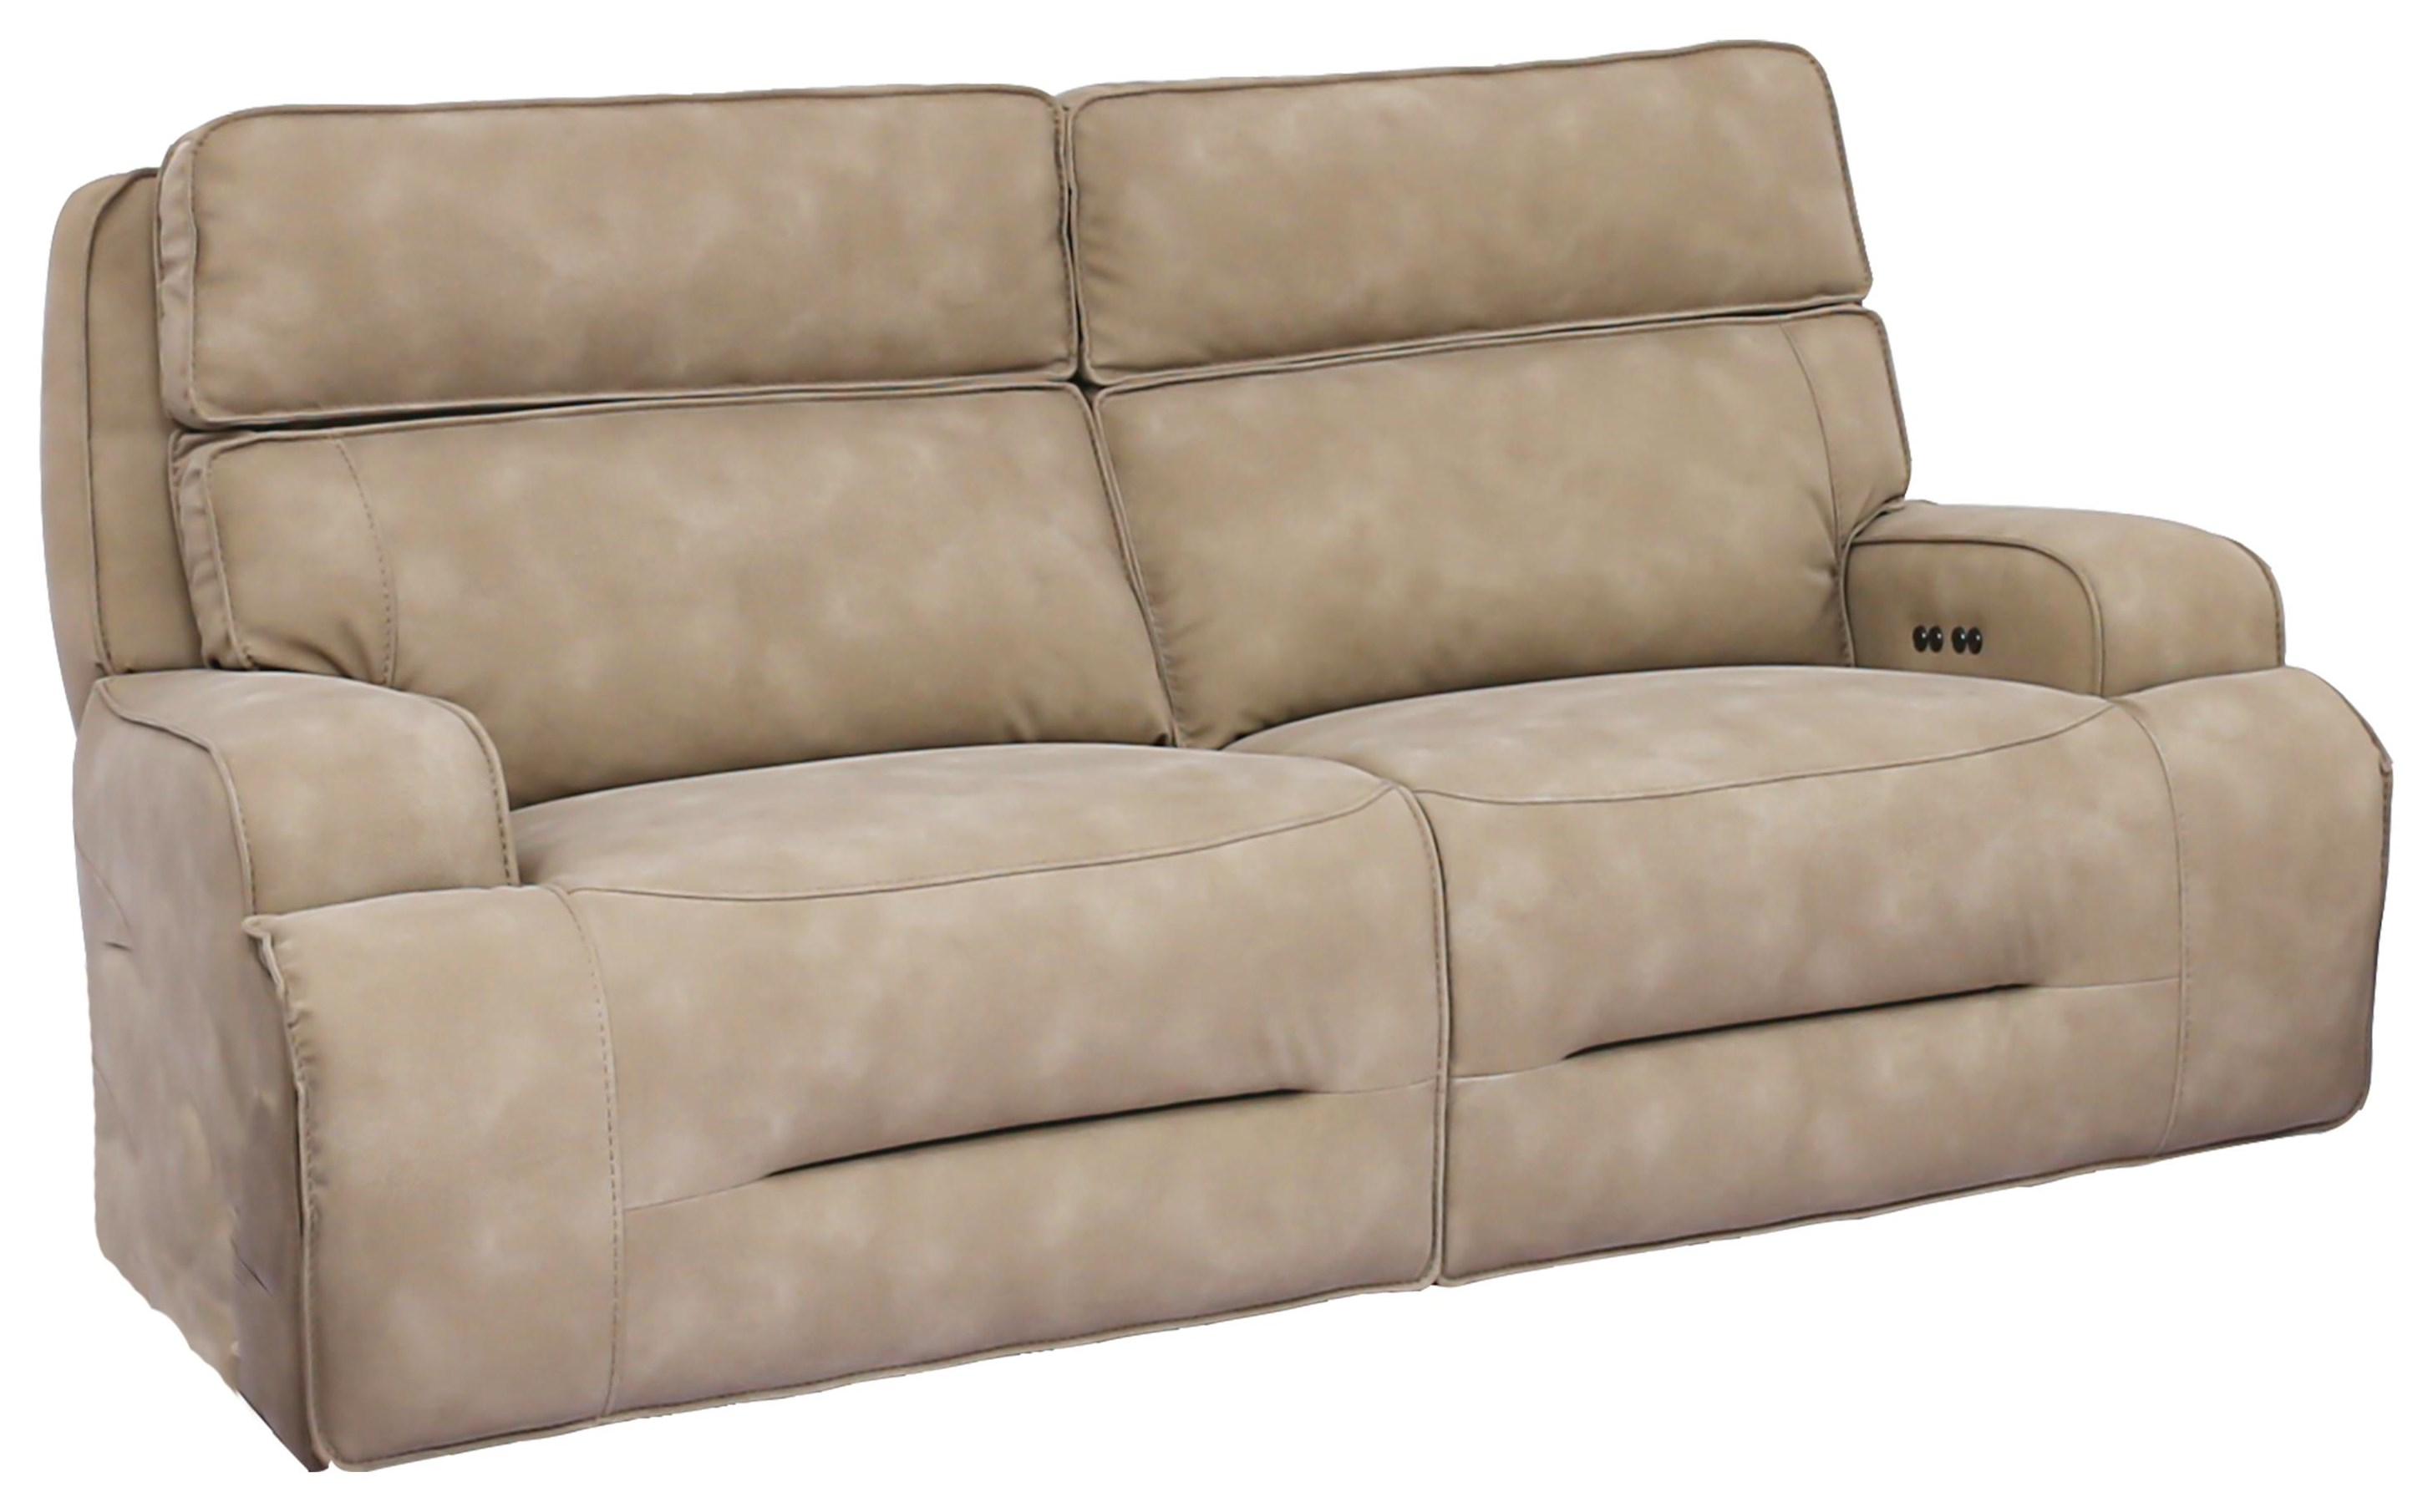 90029 Power Reclining Sofa with Power Headrest by Cheers at Beck's Furniture